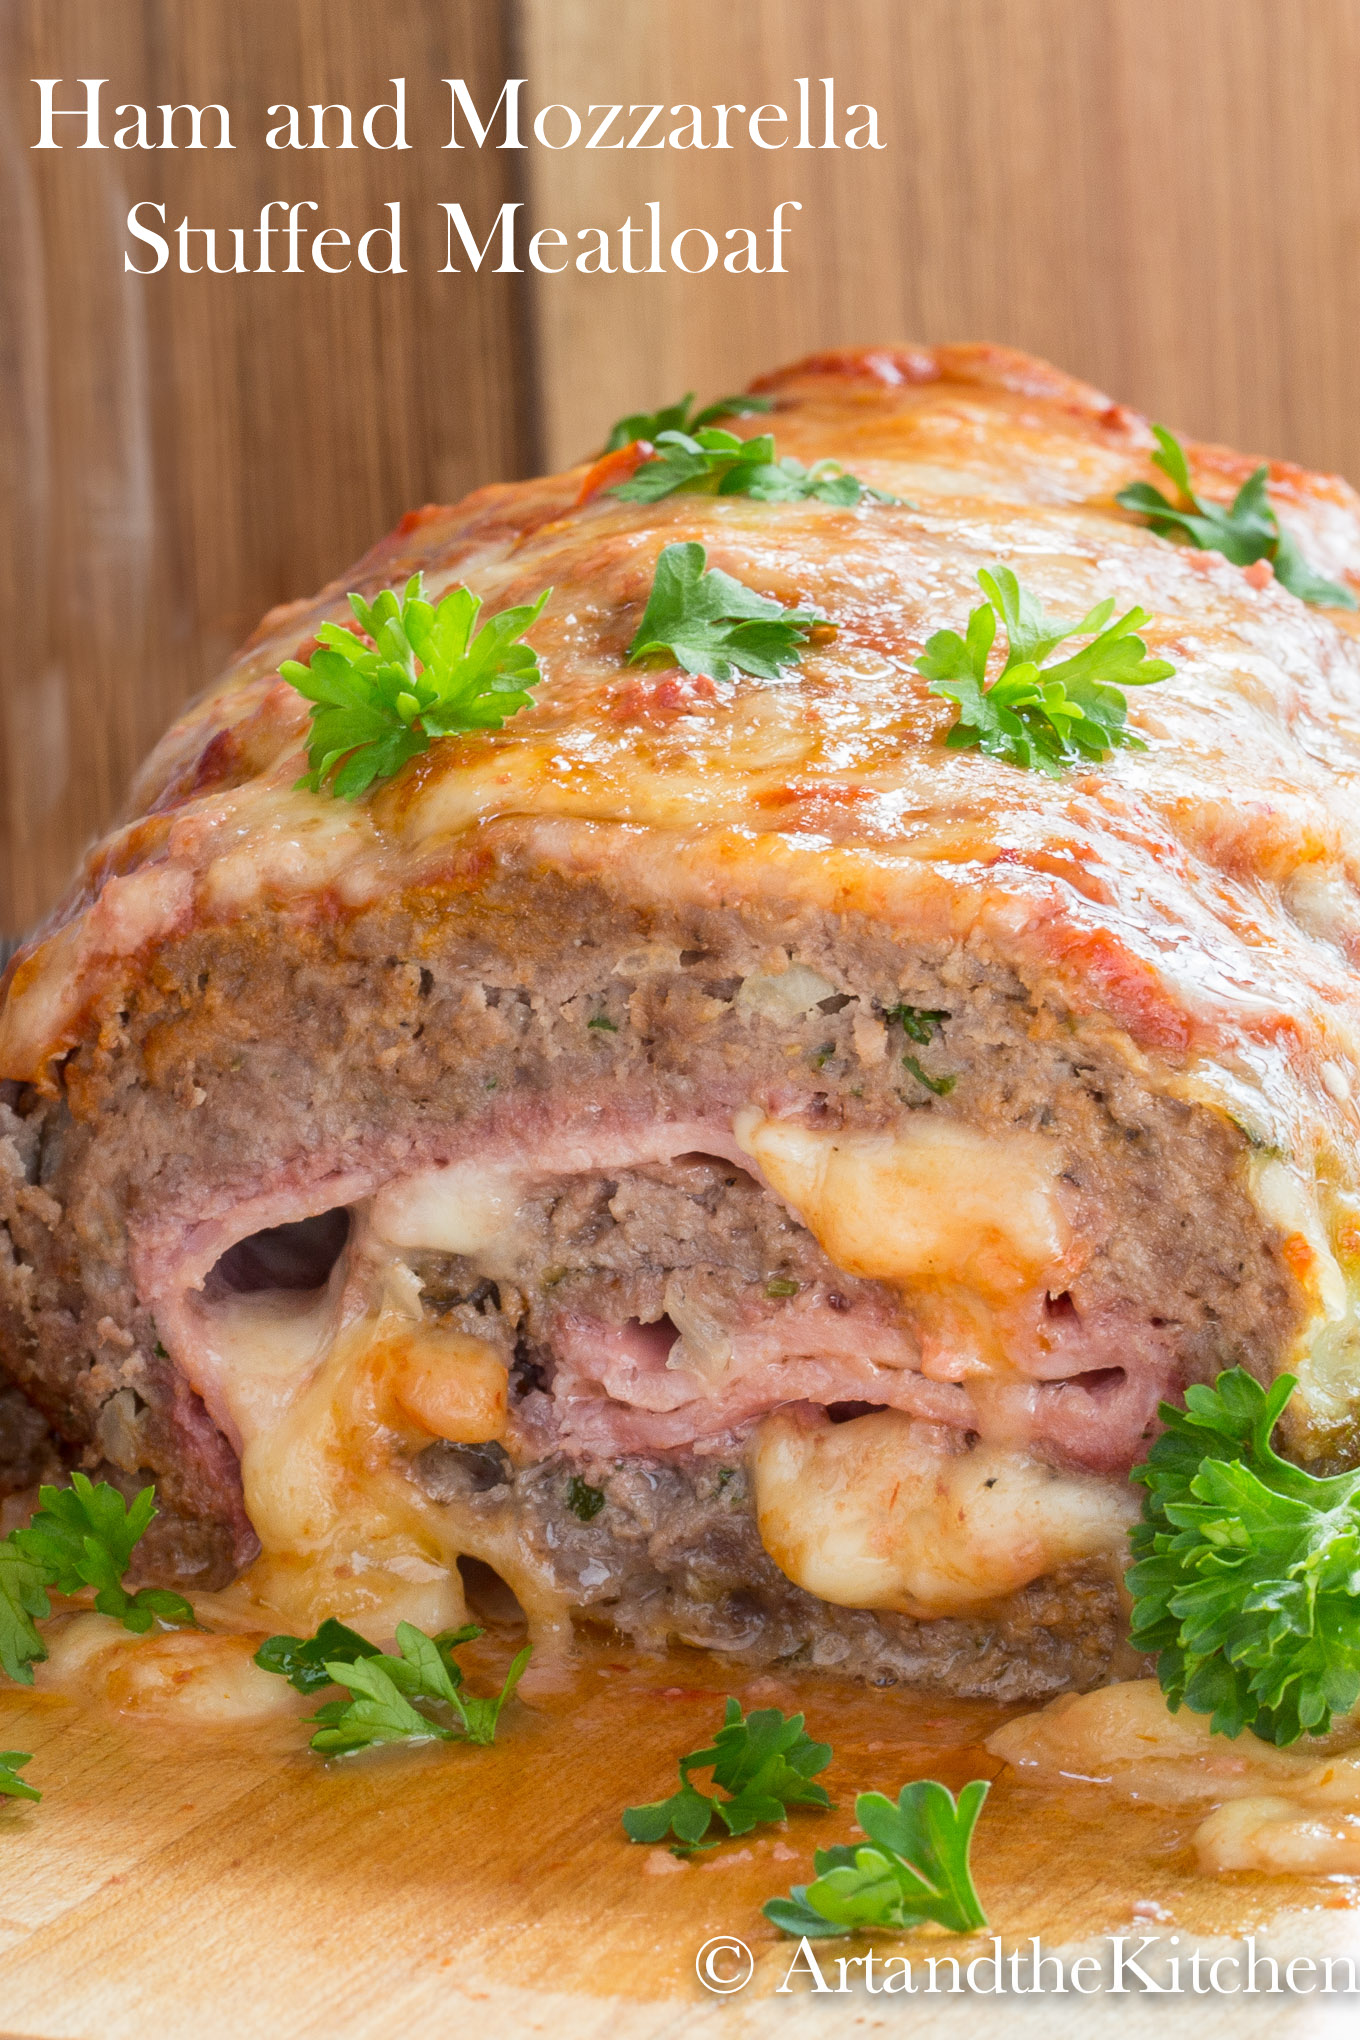 Meatloaf stuffed with ham and mozzarella cheese, garnished with parsley leaves.